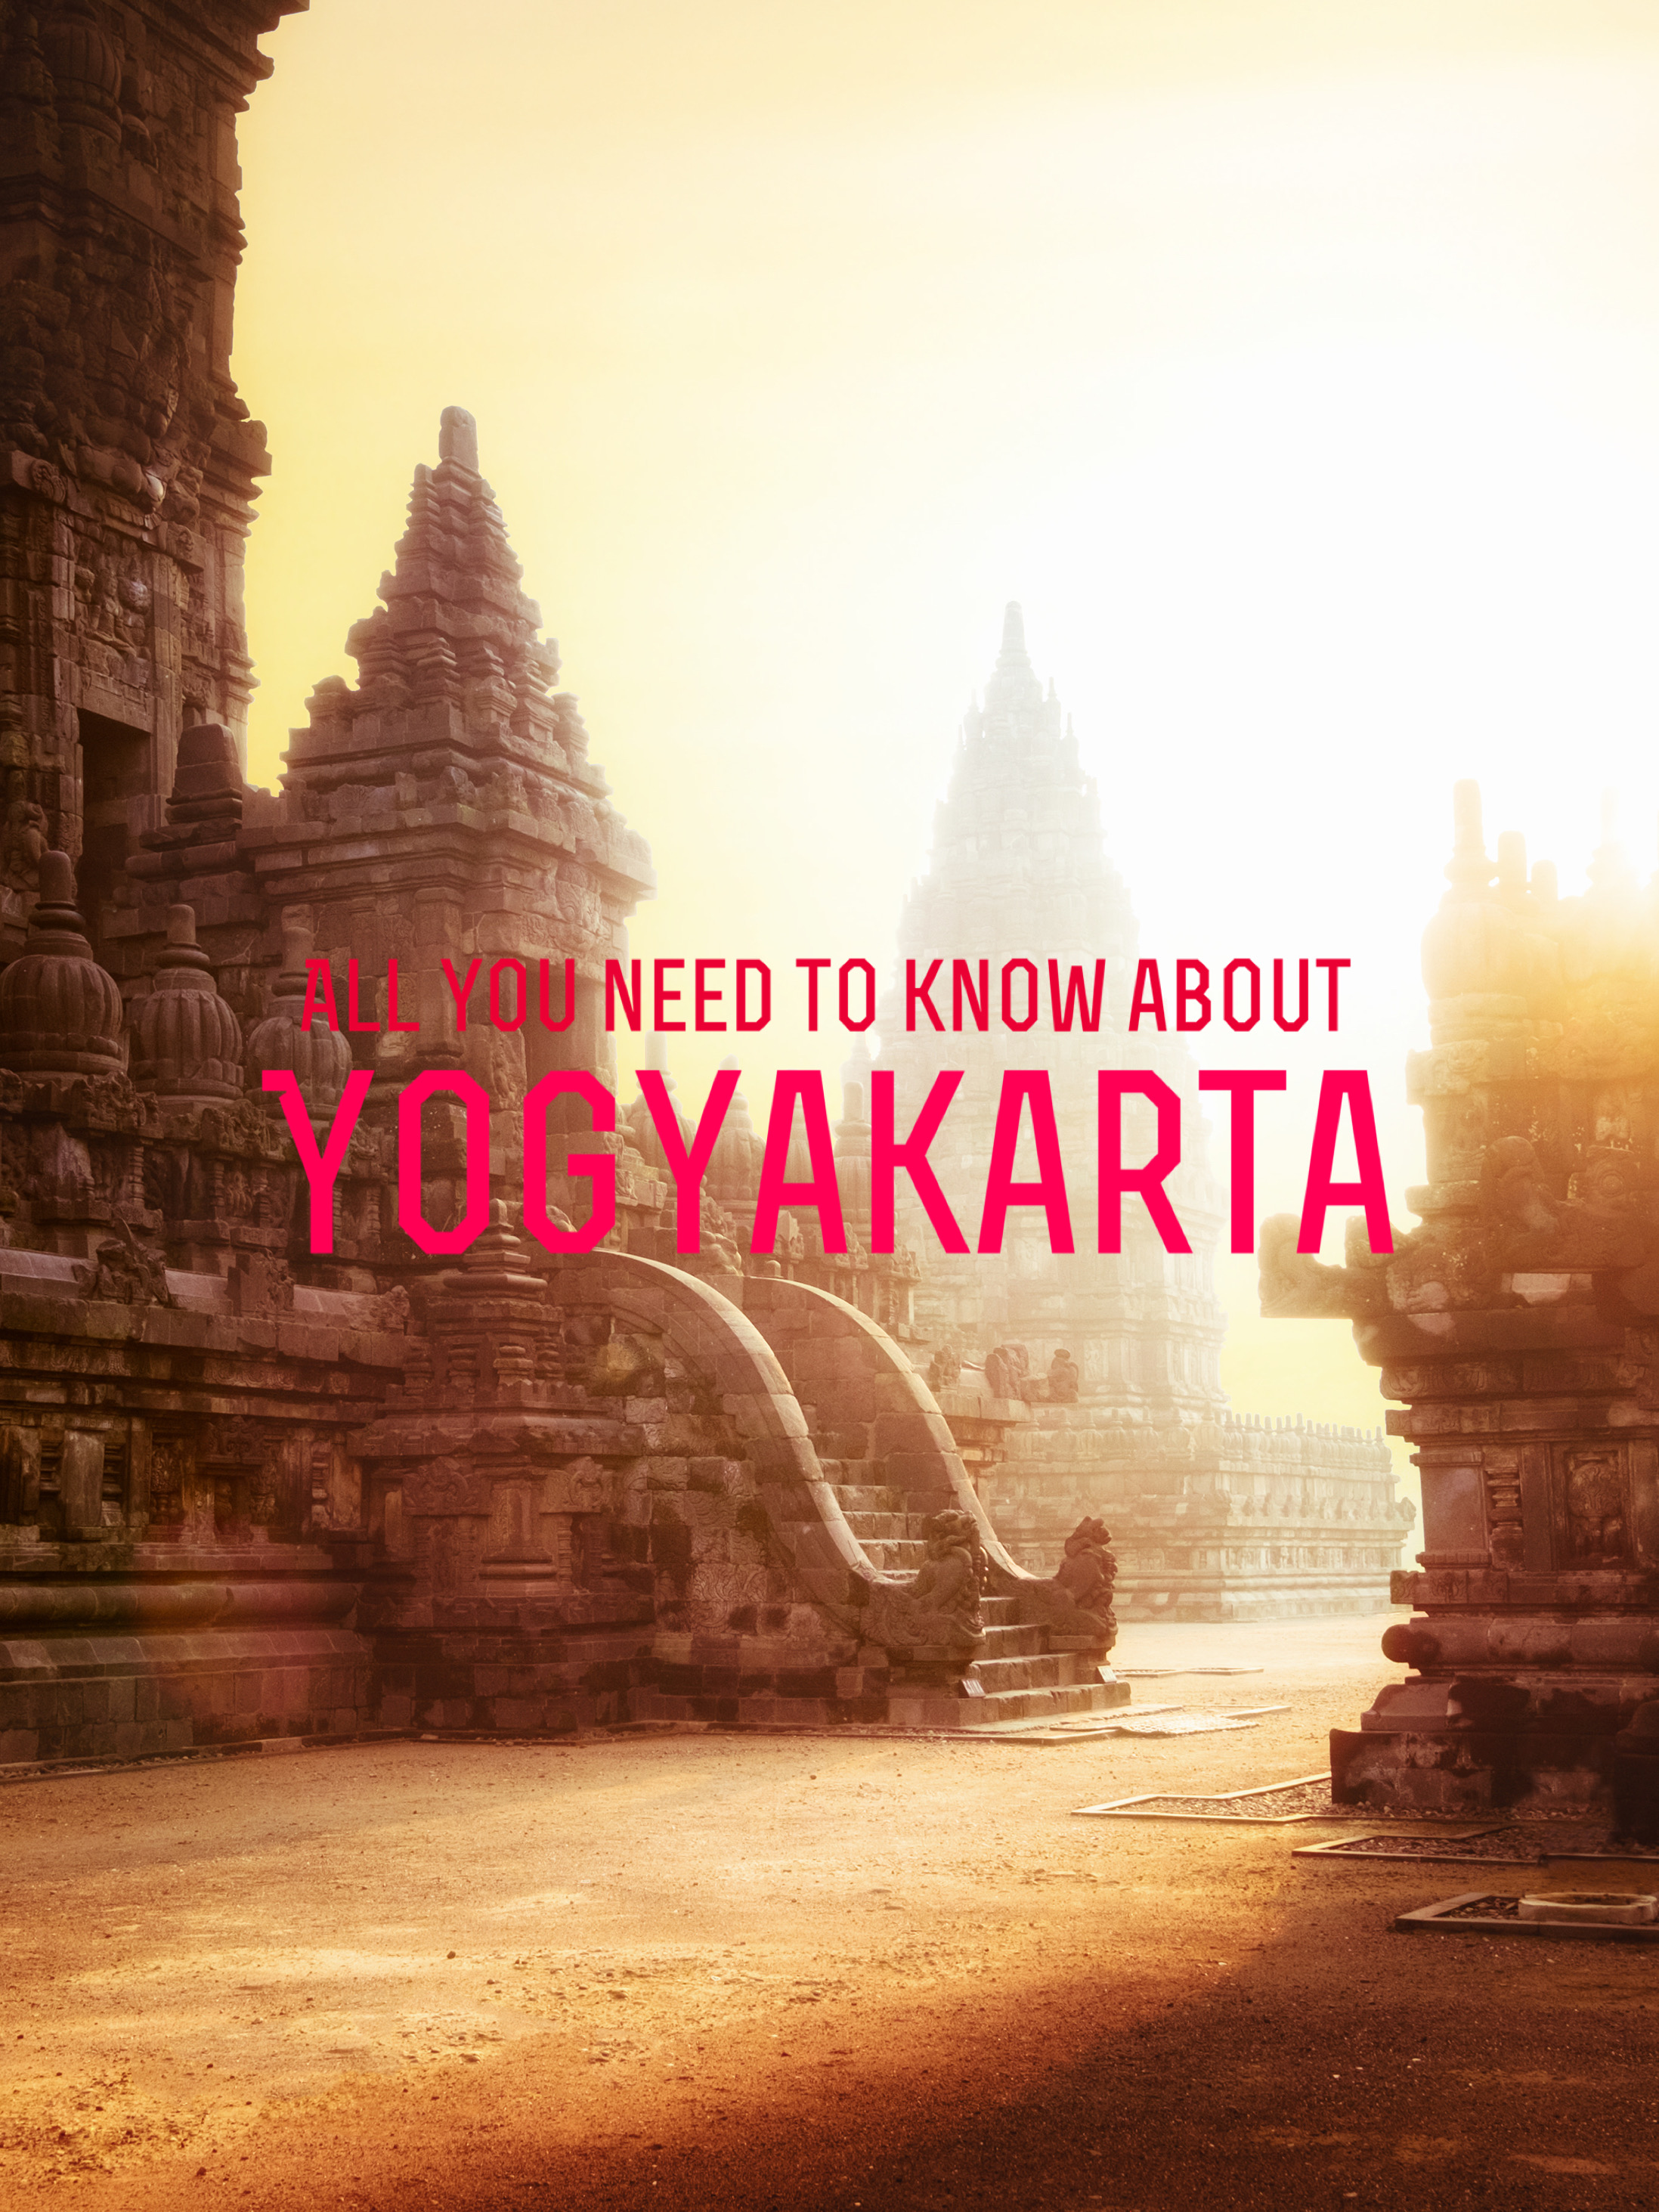 All You Need to Know about Yogyakarta